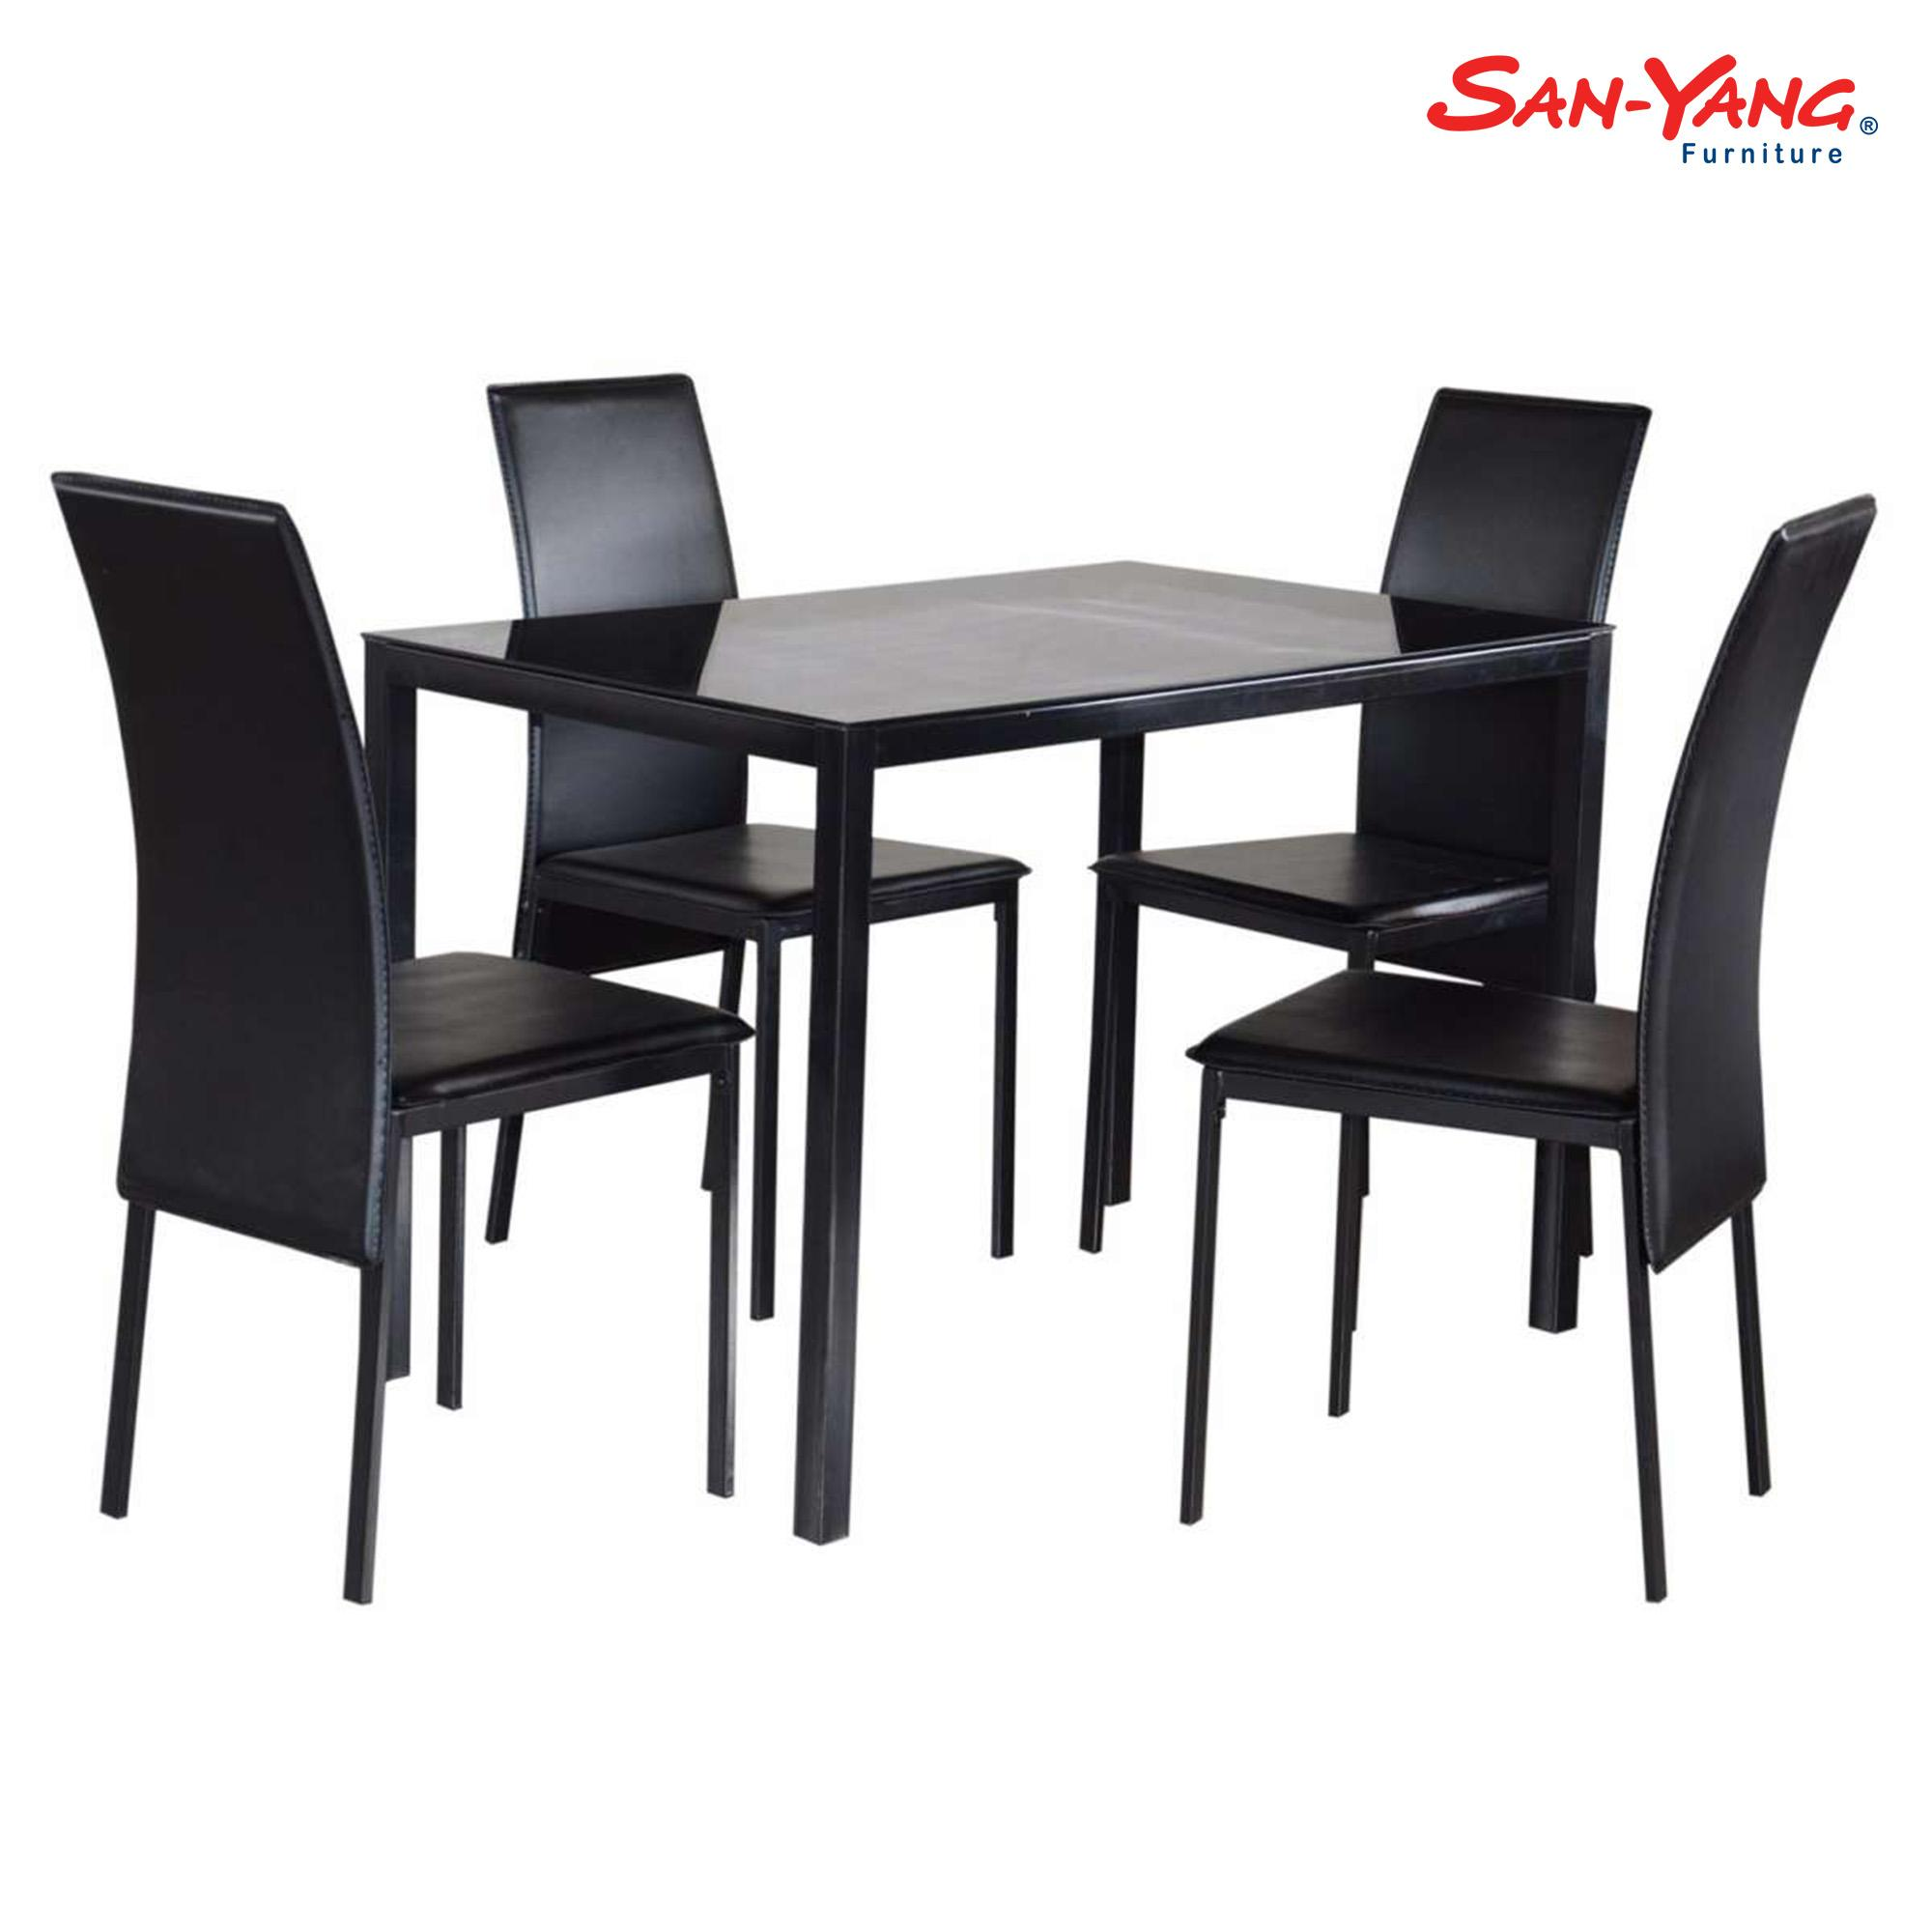 ed17399bc356 Dining Set for sale - Dining Table & Chair Set prices, brands ...